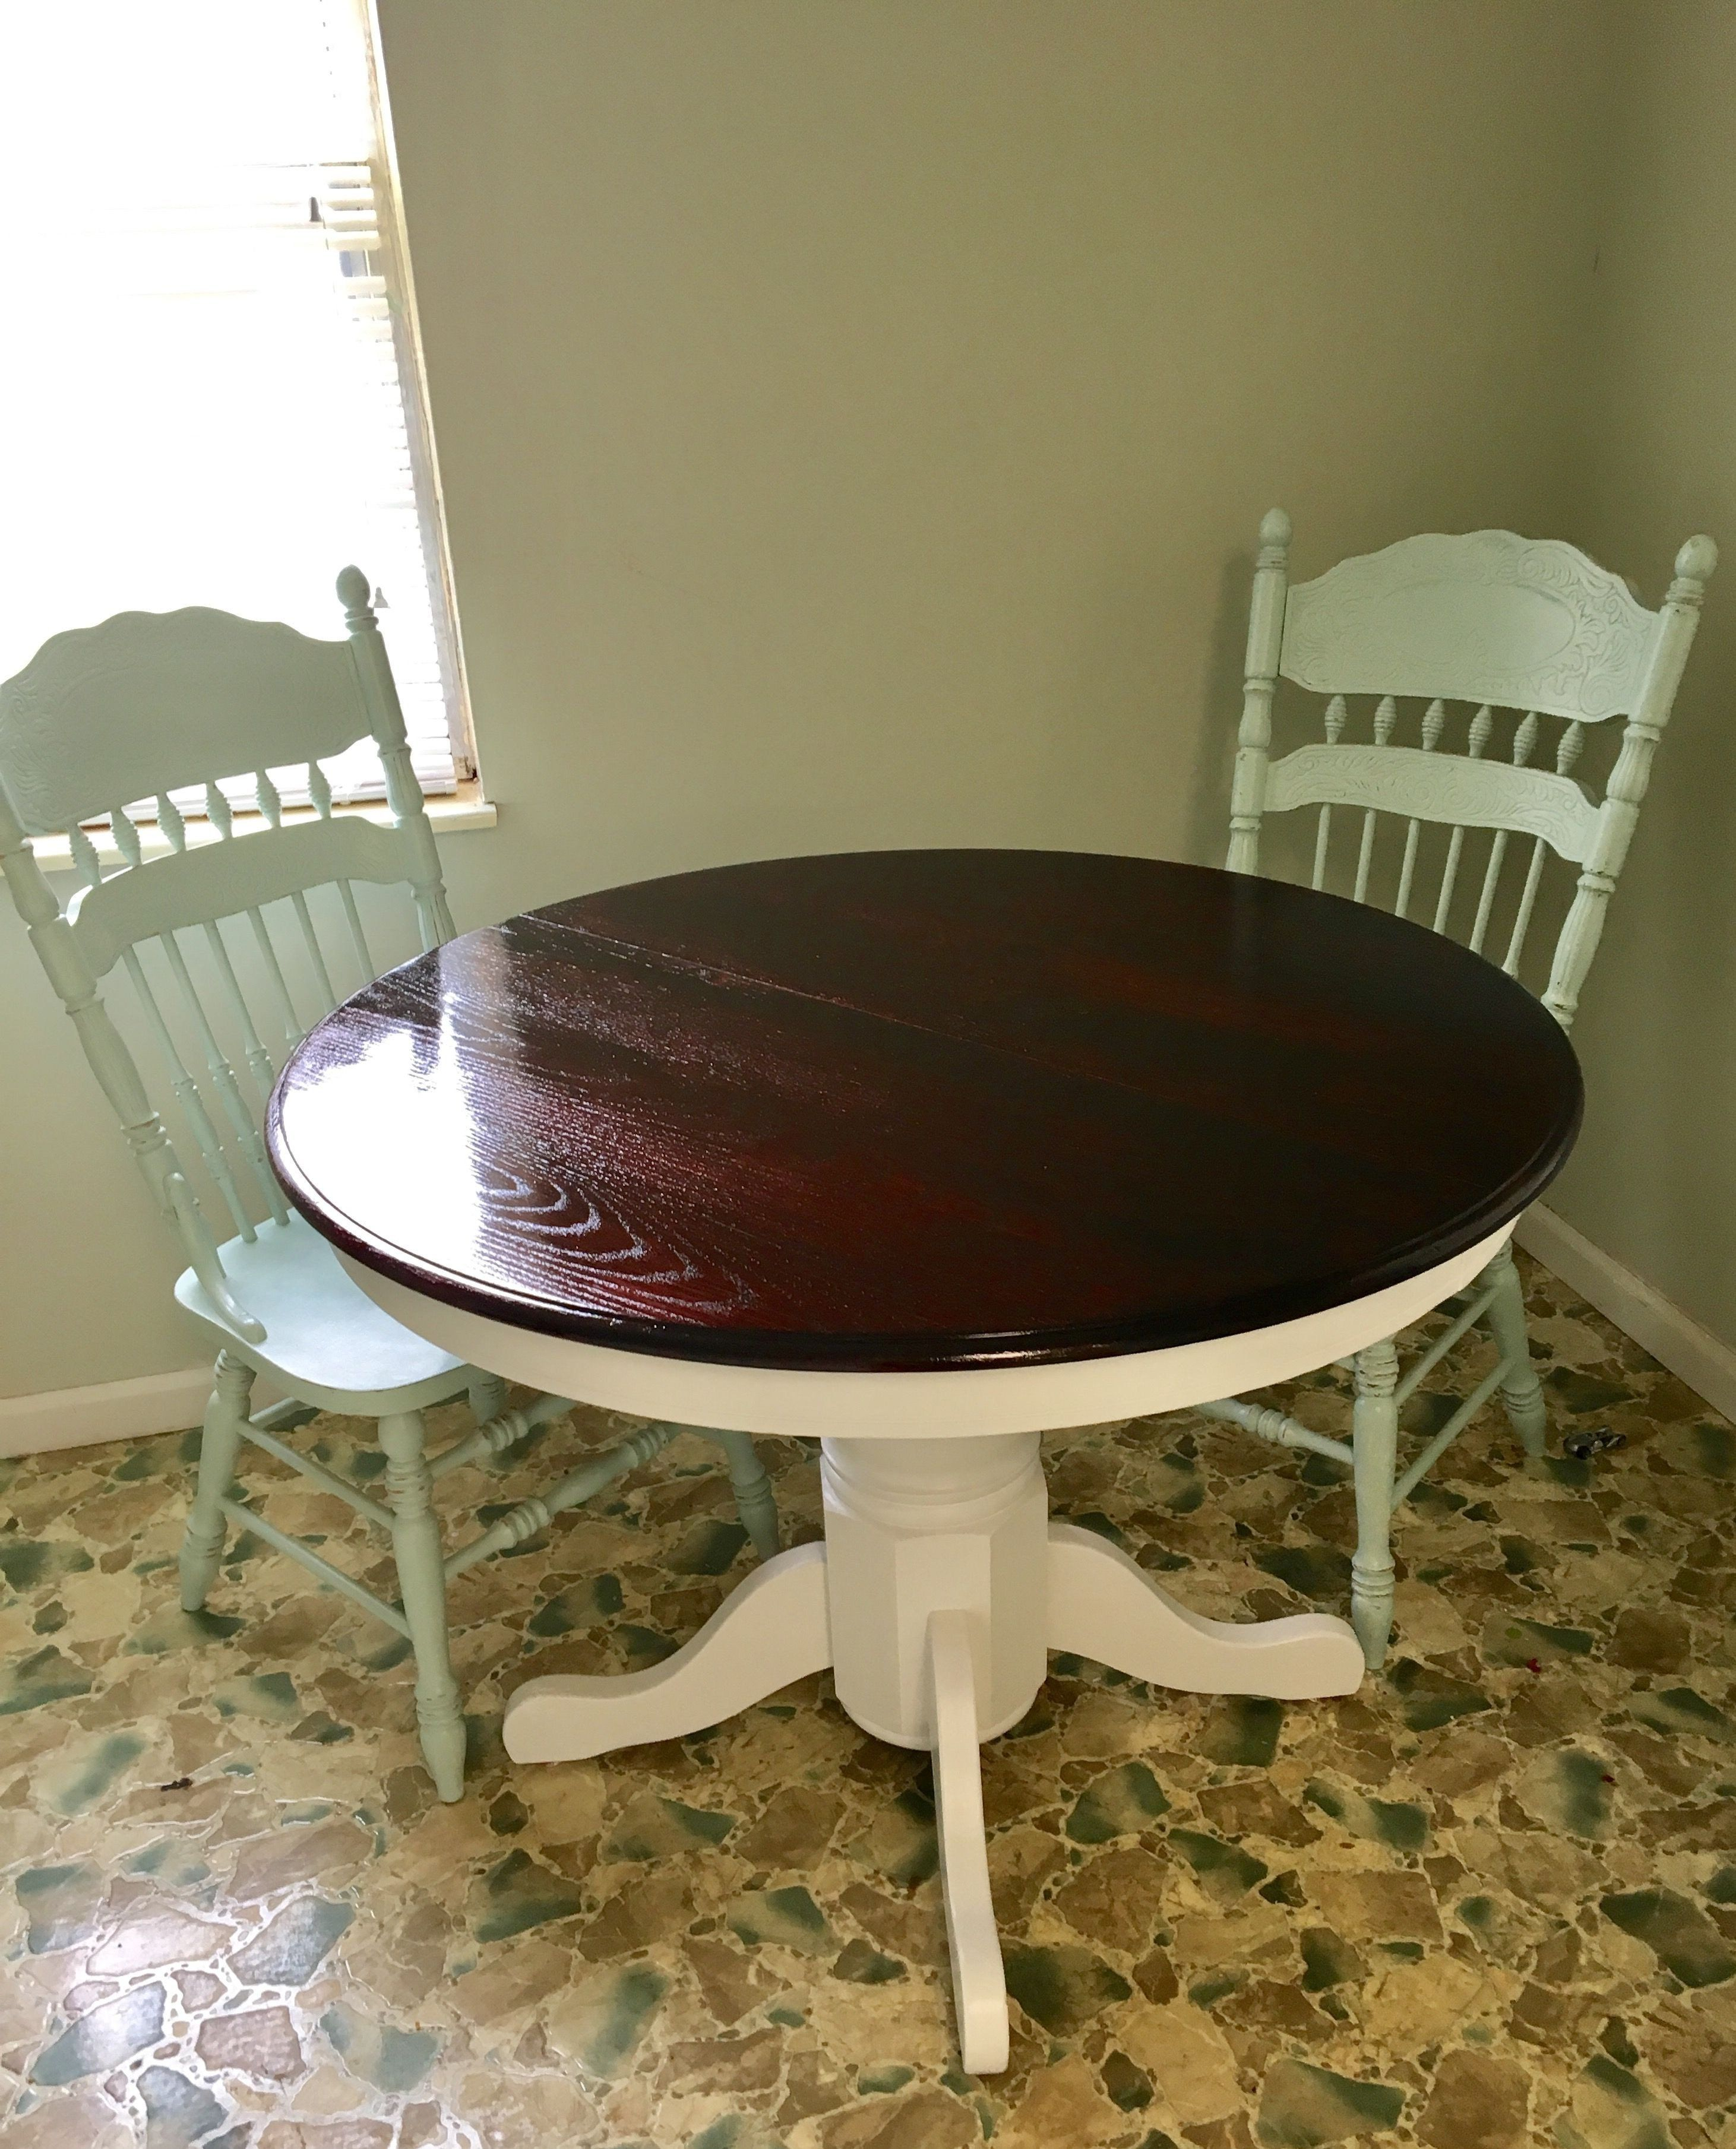 Dining Room Table Makeover Ideas Fresh Before And After Round Oak Table Makeover Redo Upcycle Dining Table Makeover Dining Room Table Makeover Diy Dining Table